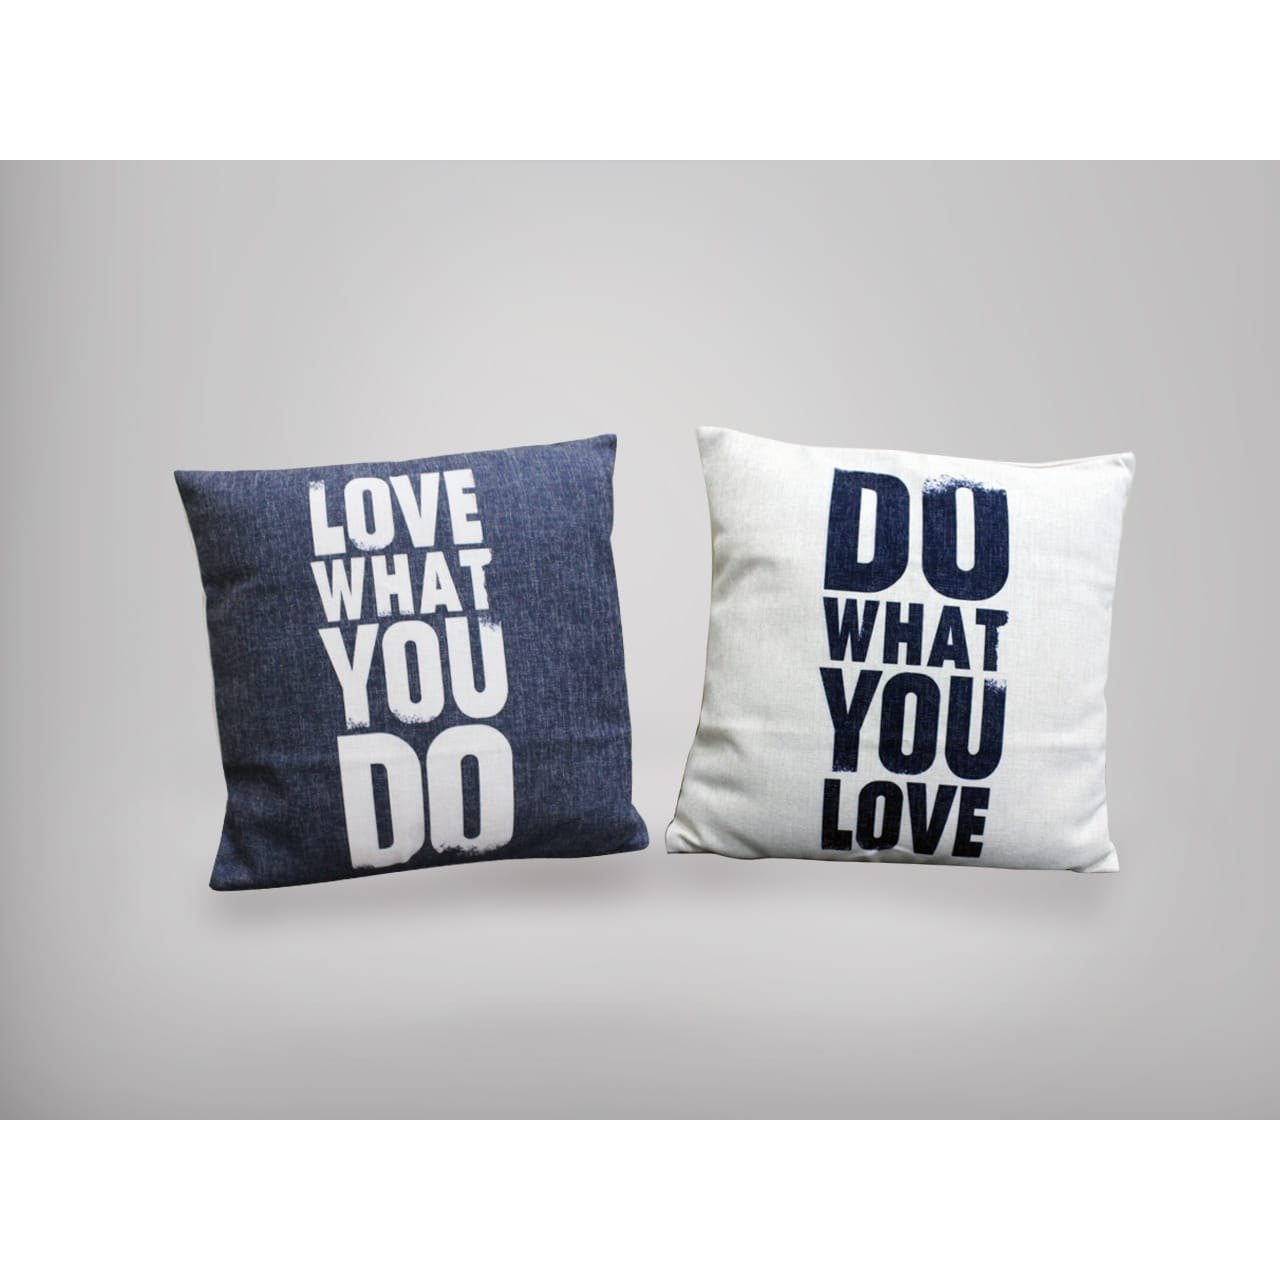 Cushion Do What You Love Comfort Design The Chair Amp Table People